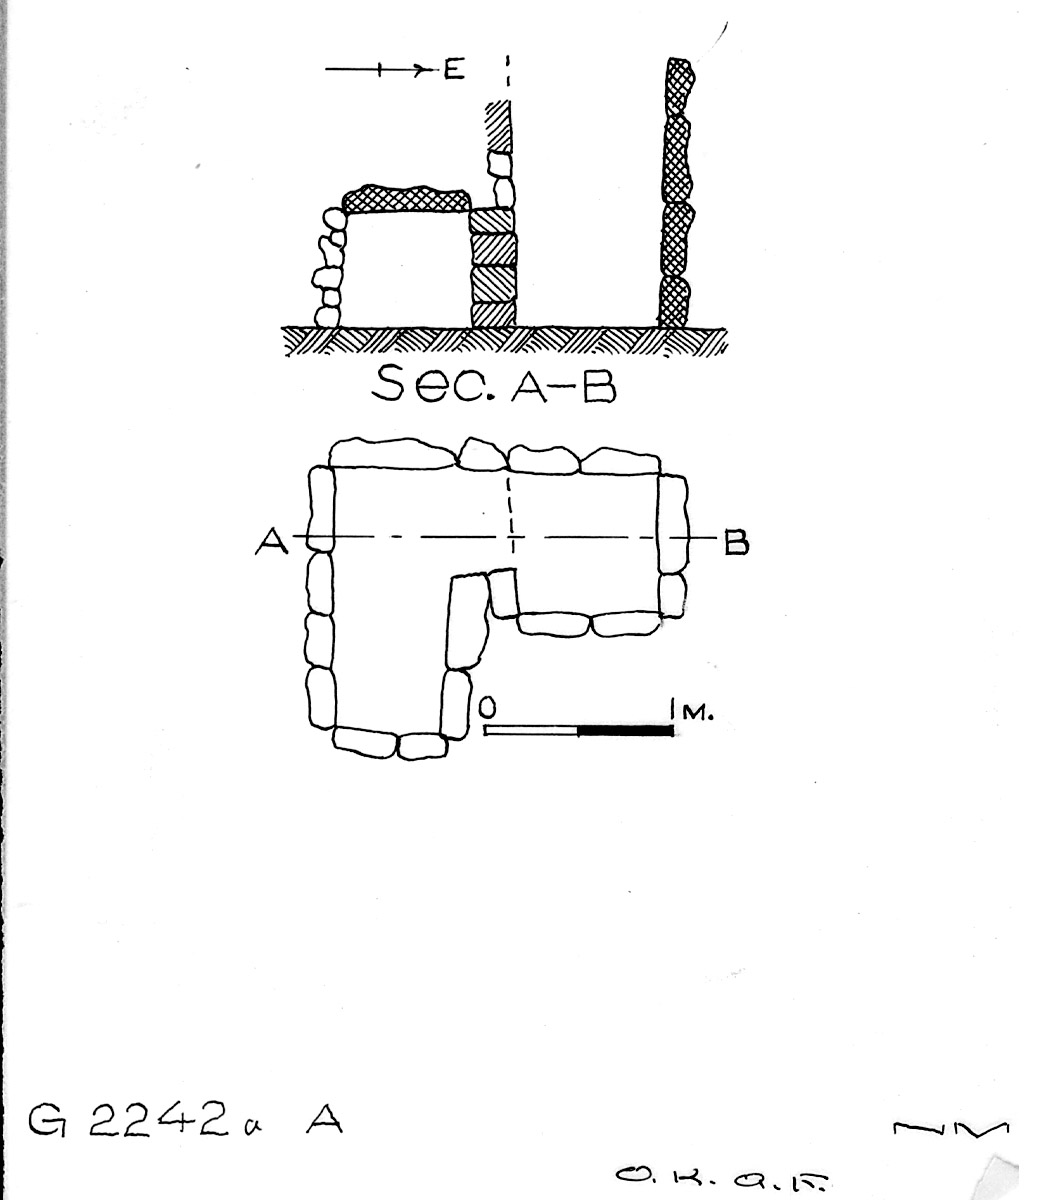 Maps and plans: G 2242a, Shaft A